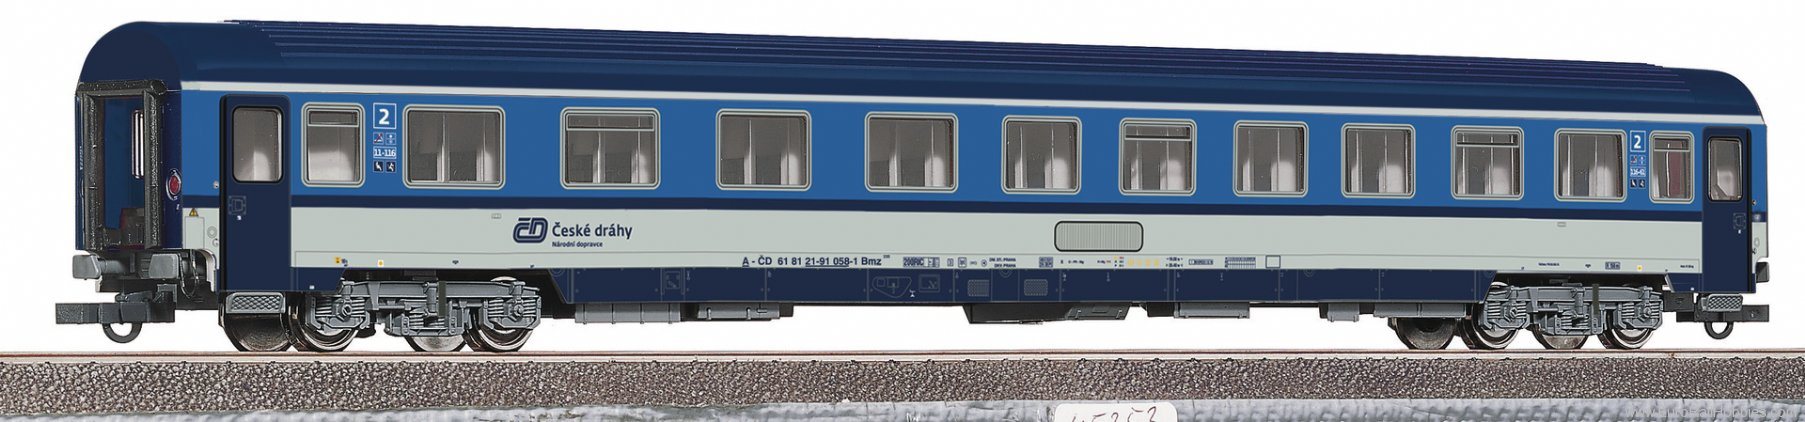 Roco 64644 2nd class passenger carriage, CD